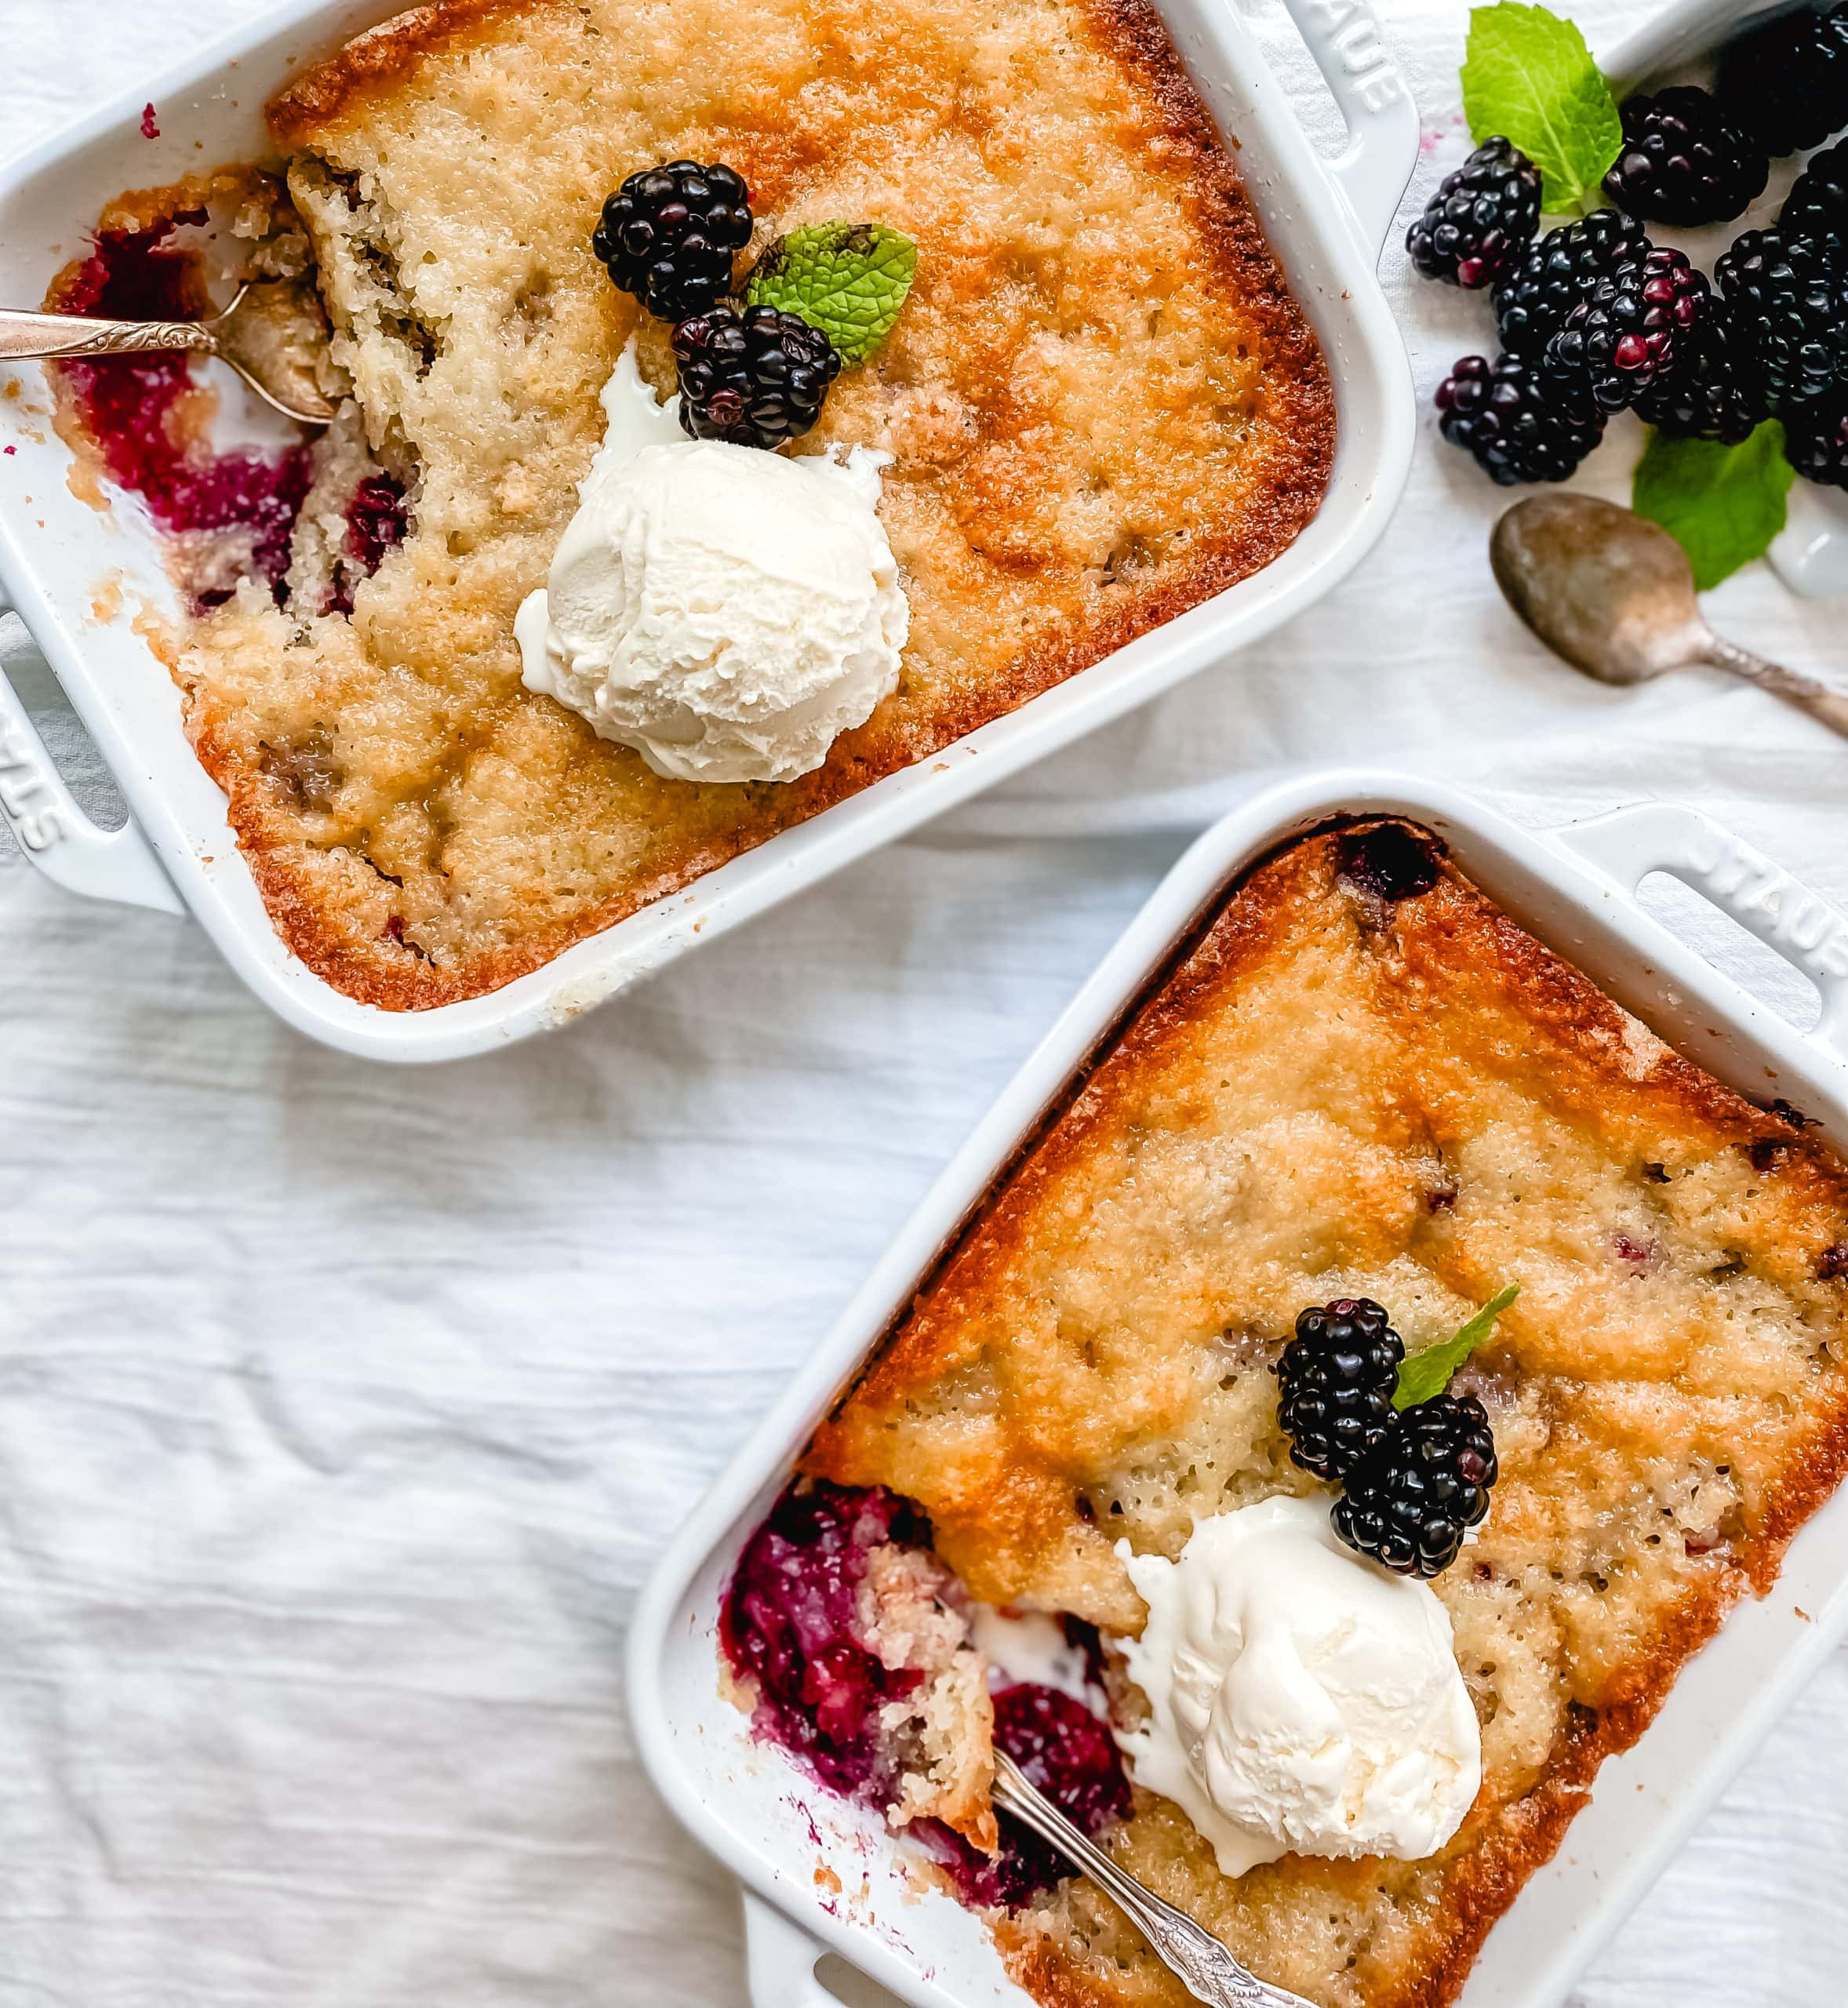 Blackberry Cobbler. A Texas favorite! This Blackberry Cobbler is made with a sweet, buttery crust with fresh sweetened blackberries and topped with vanilla bean ice cream. The perfect summer dessert recipe!